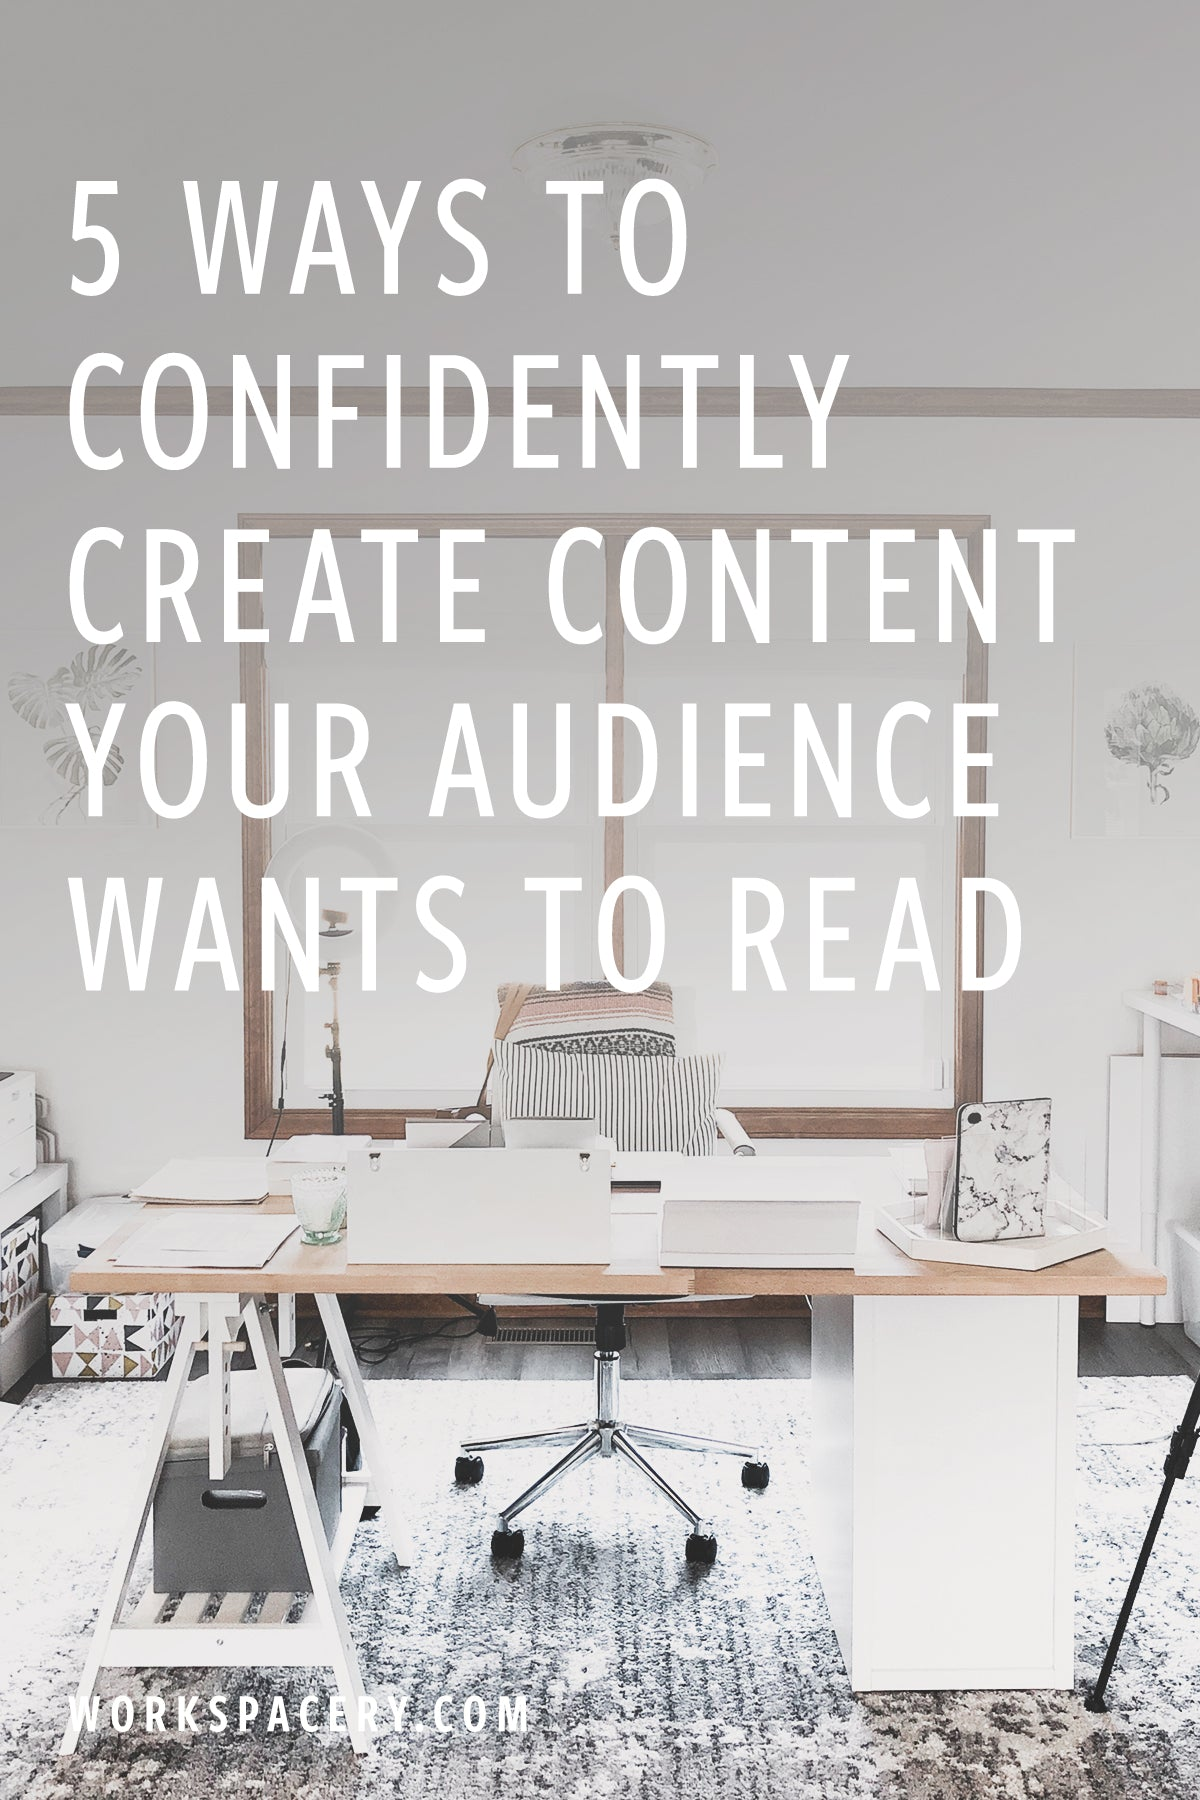 5 Ways to Confidently Create Content Your Audience Wants to Read